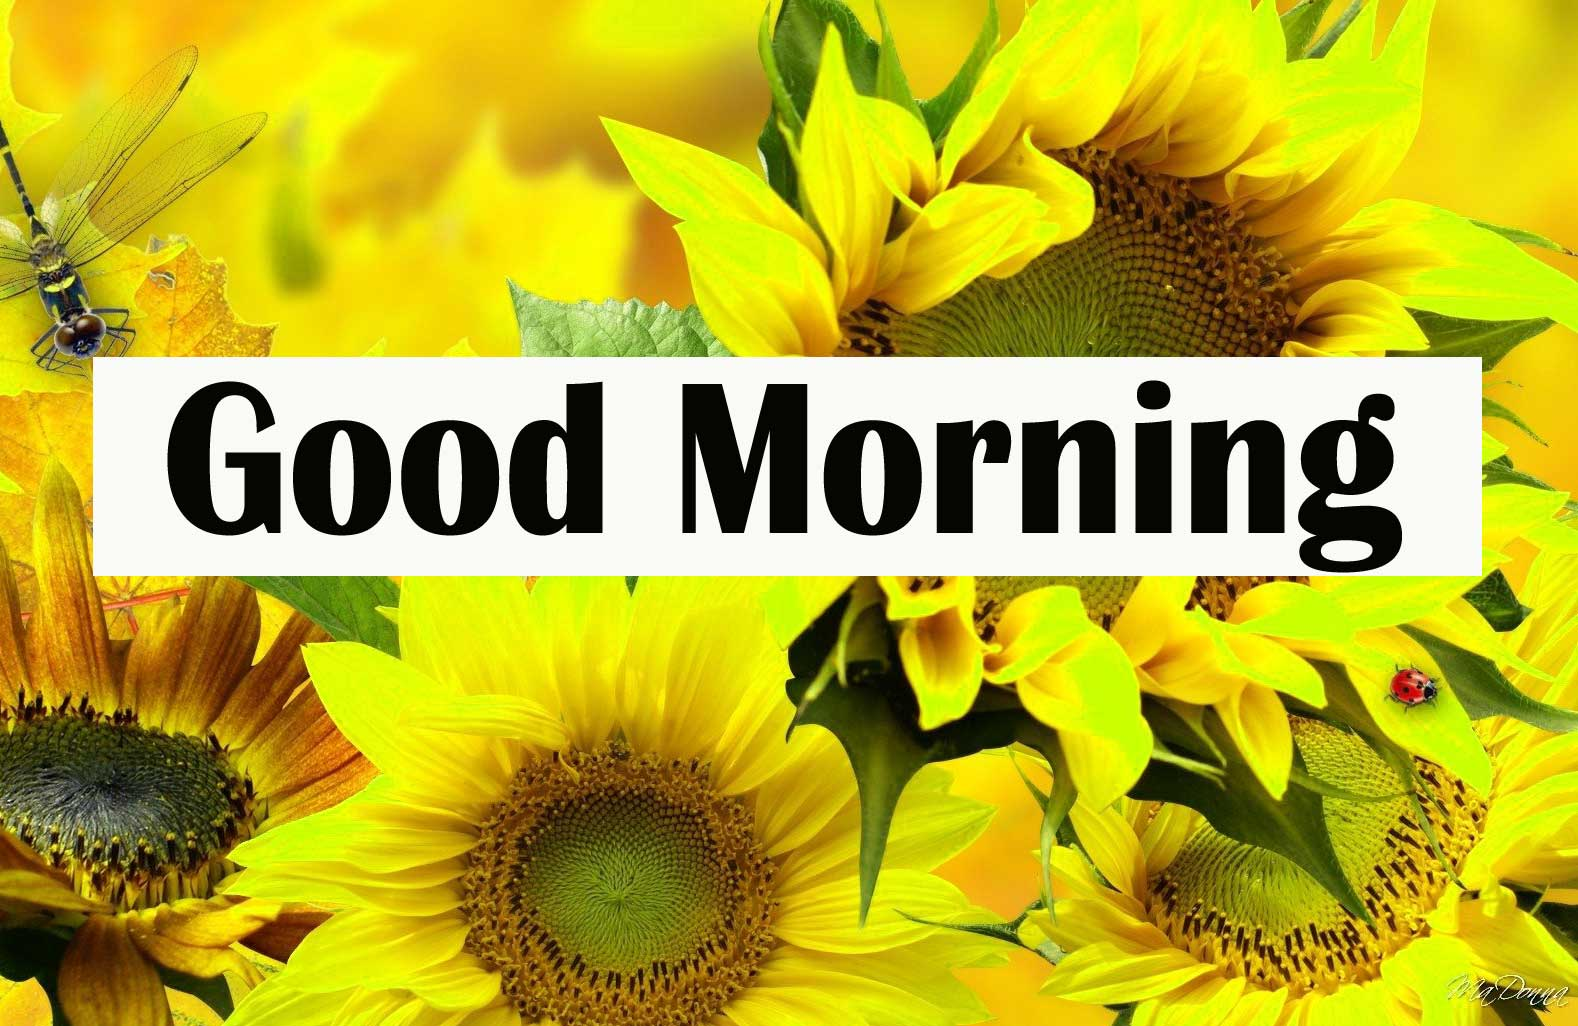 Full HD Good Morning Sunflower Images Pics Download